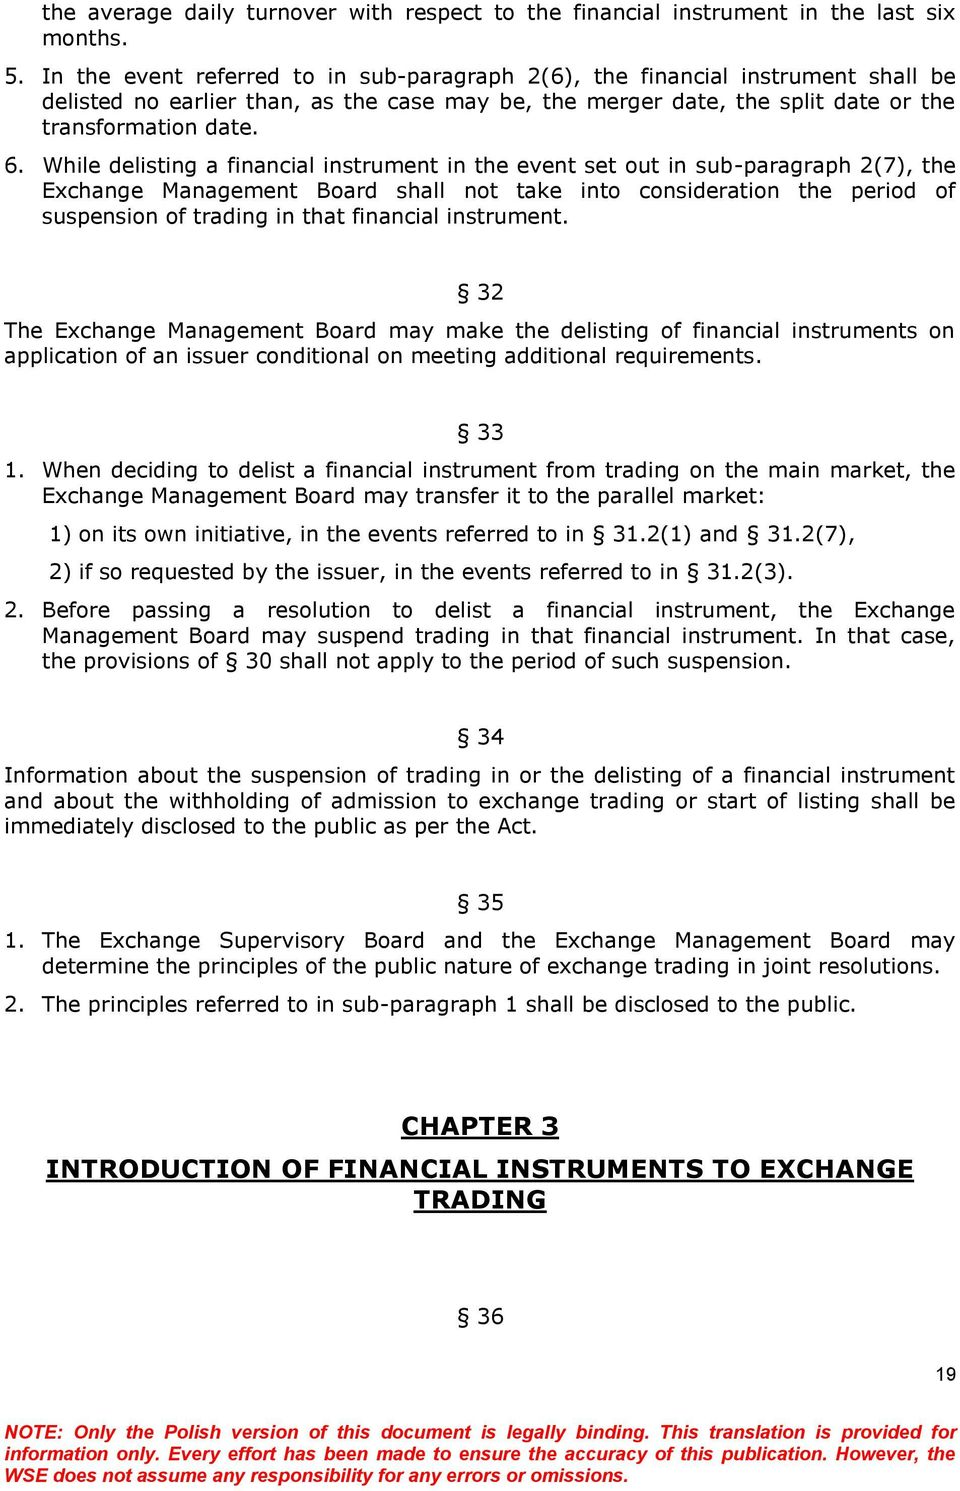 While delisting a financial instrument in the event set out in sub-paragraph 2(7), the Exchange Management Board shall not take into consideration the period of suspension of trading in that